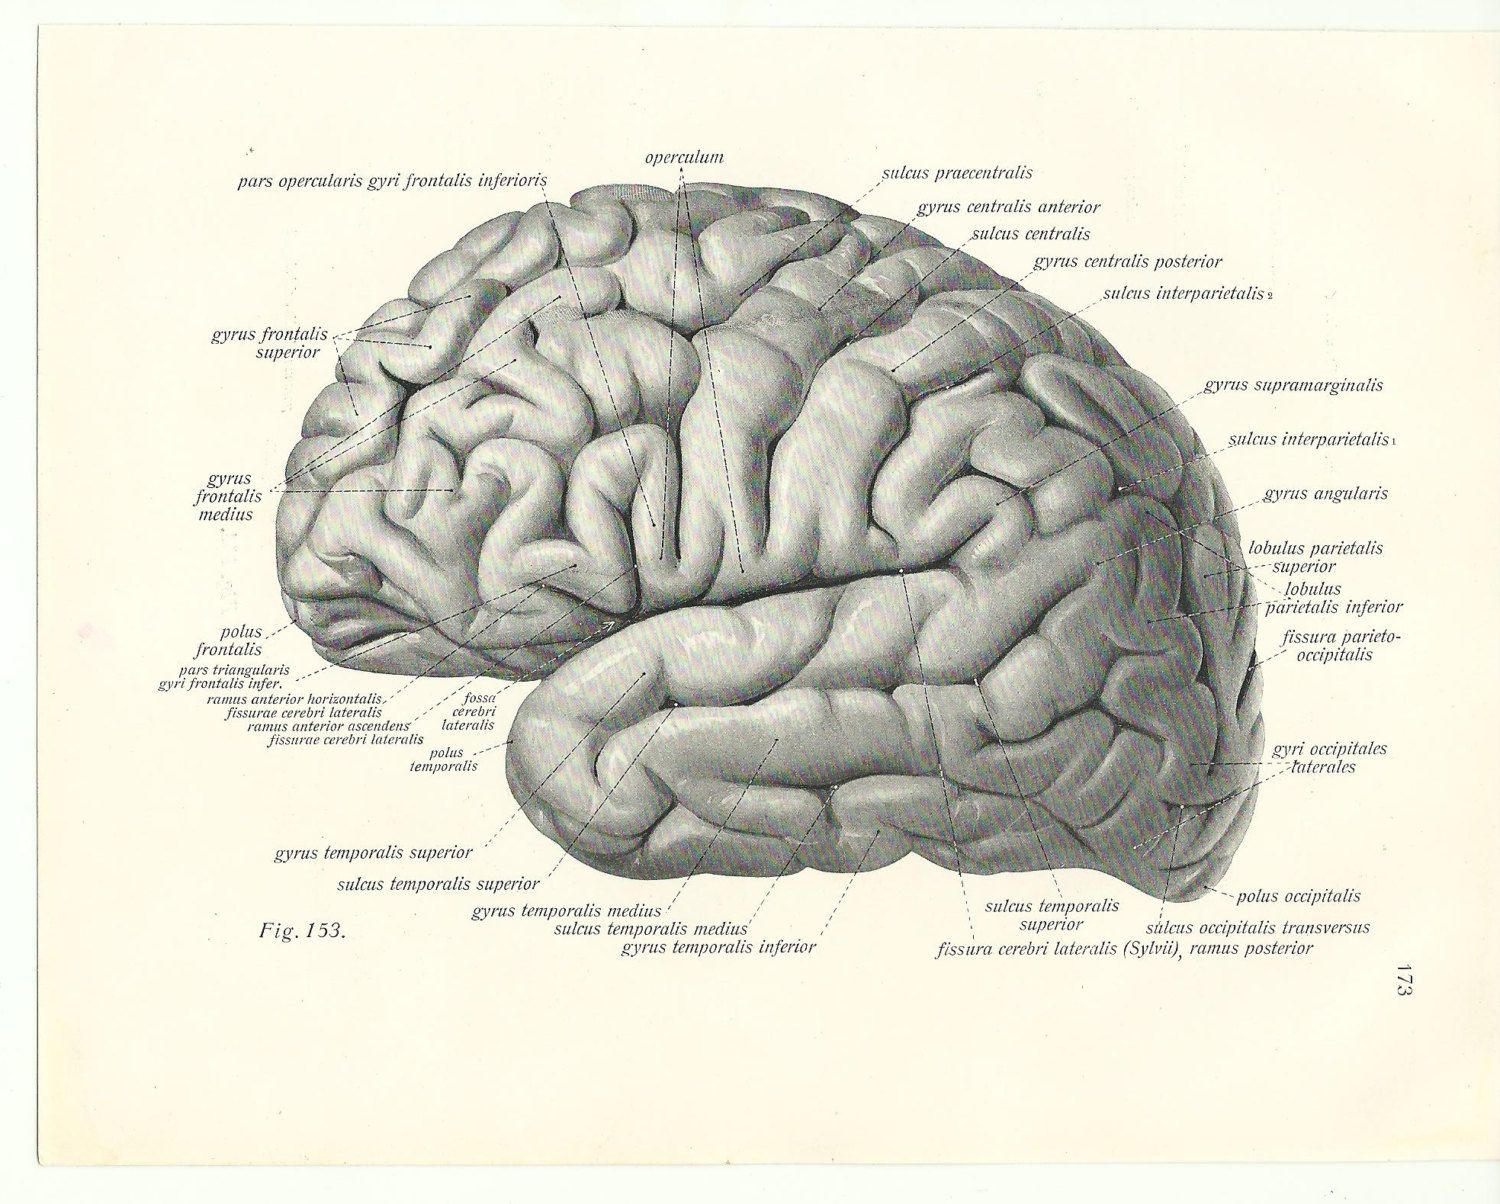 brain structures drawing - Google Search | Of clinical interest ...